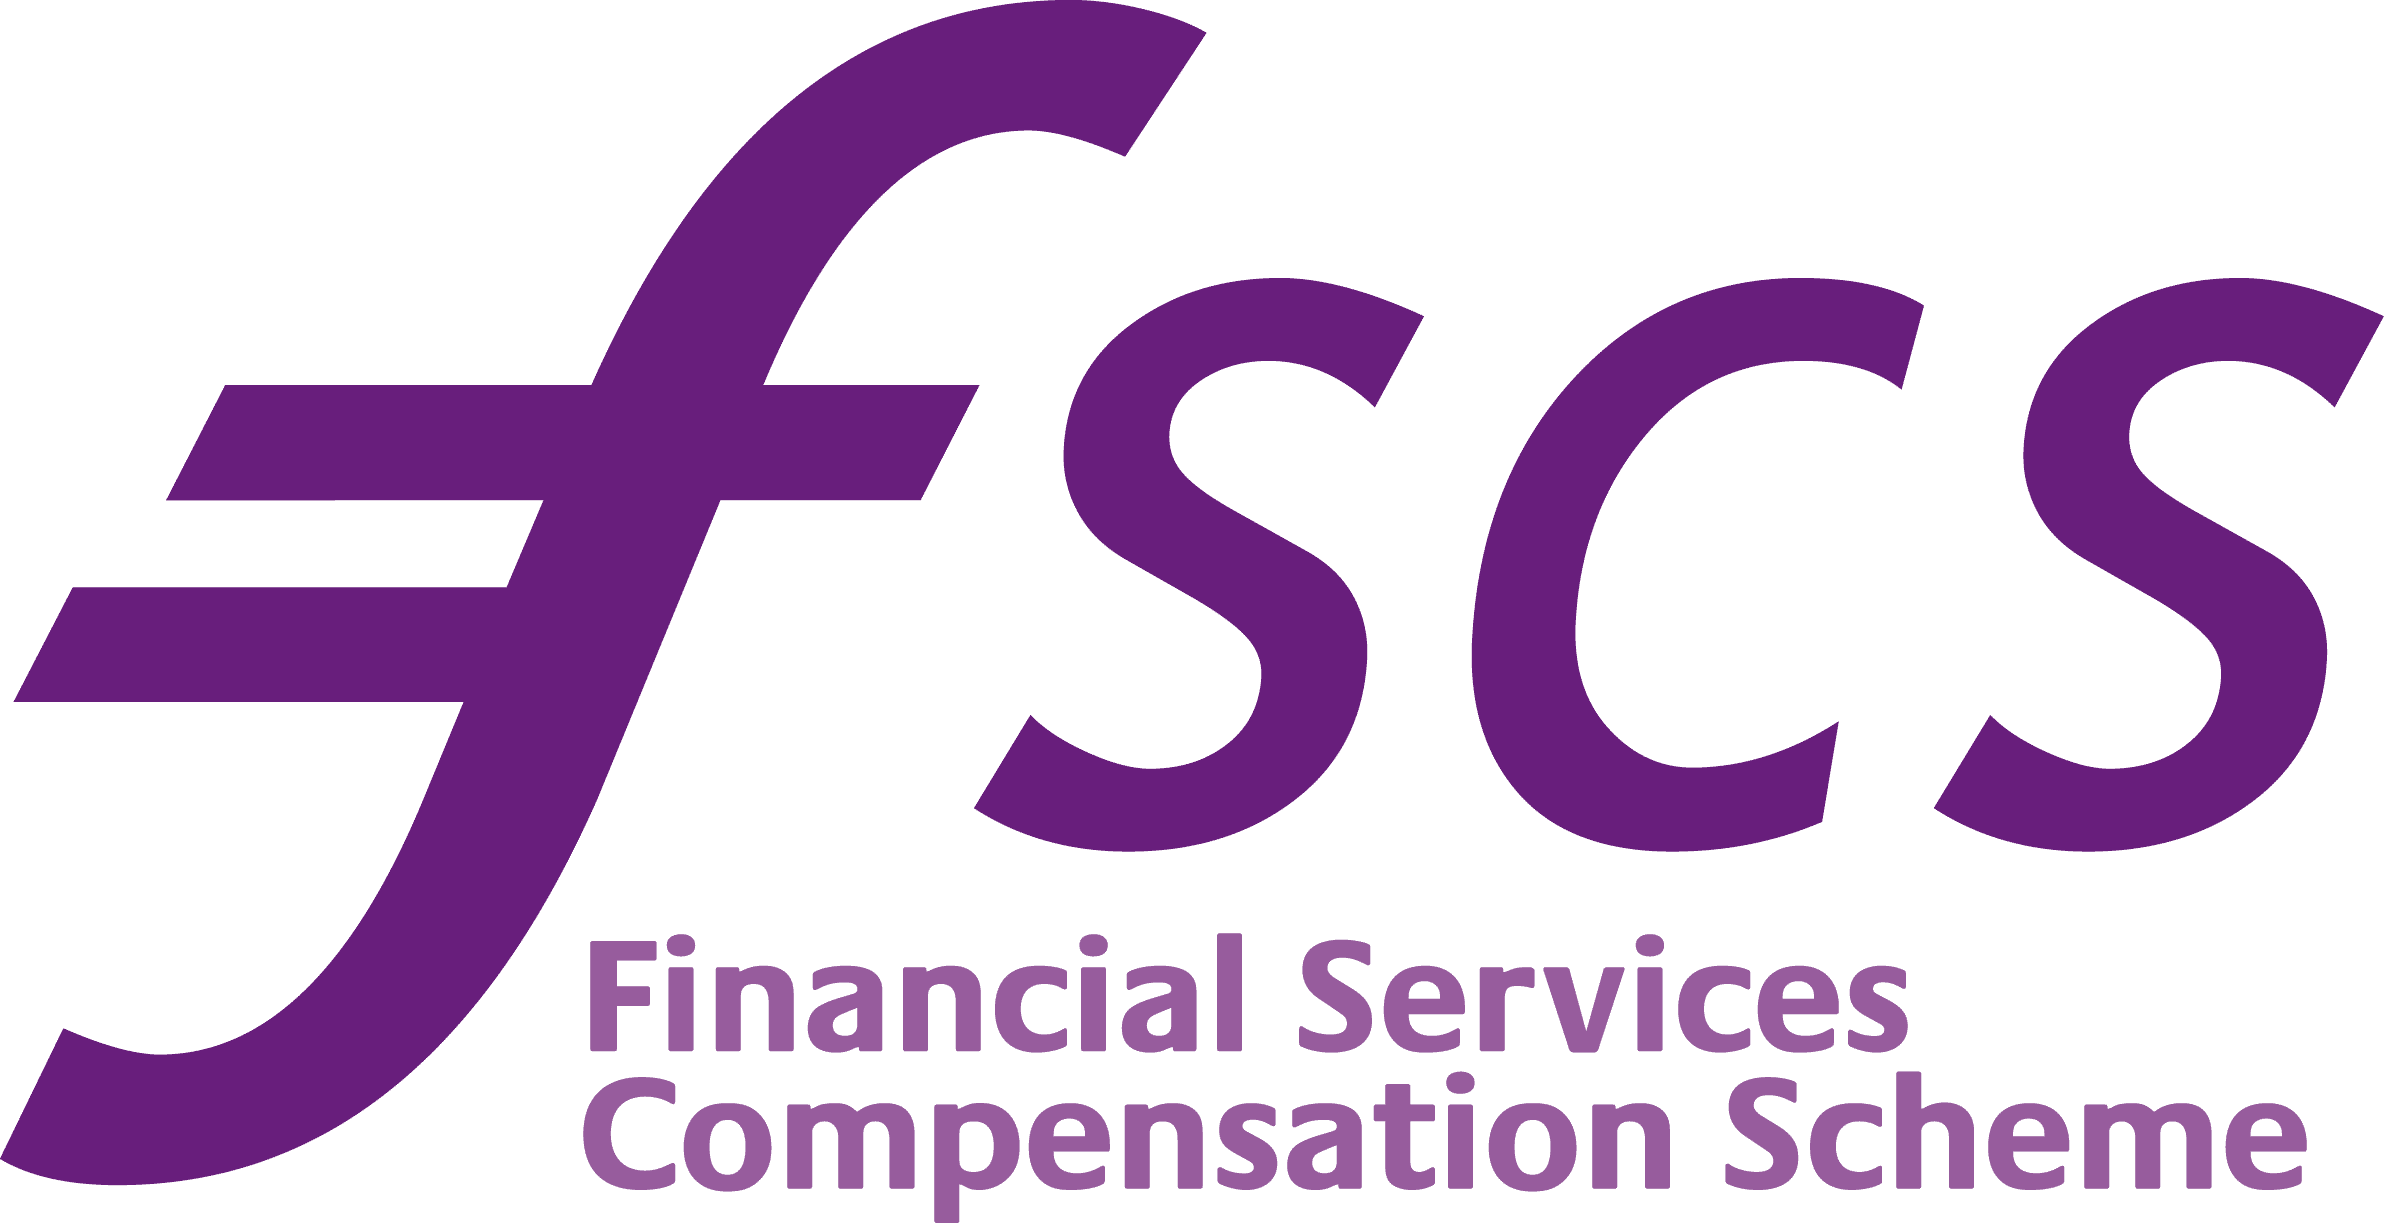 Financial Services Compensation Authority